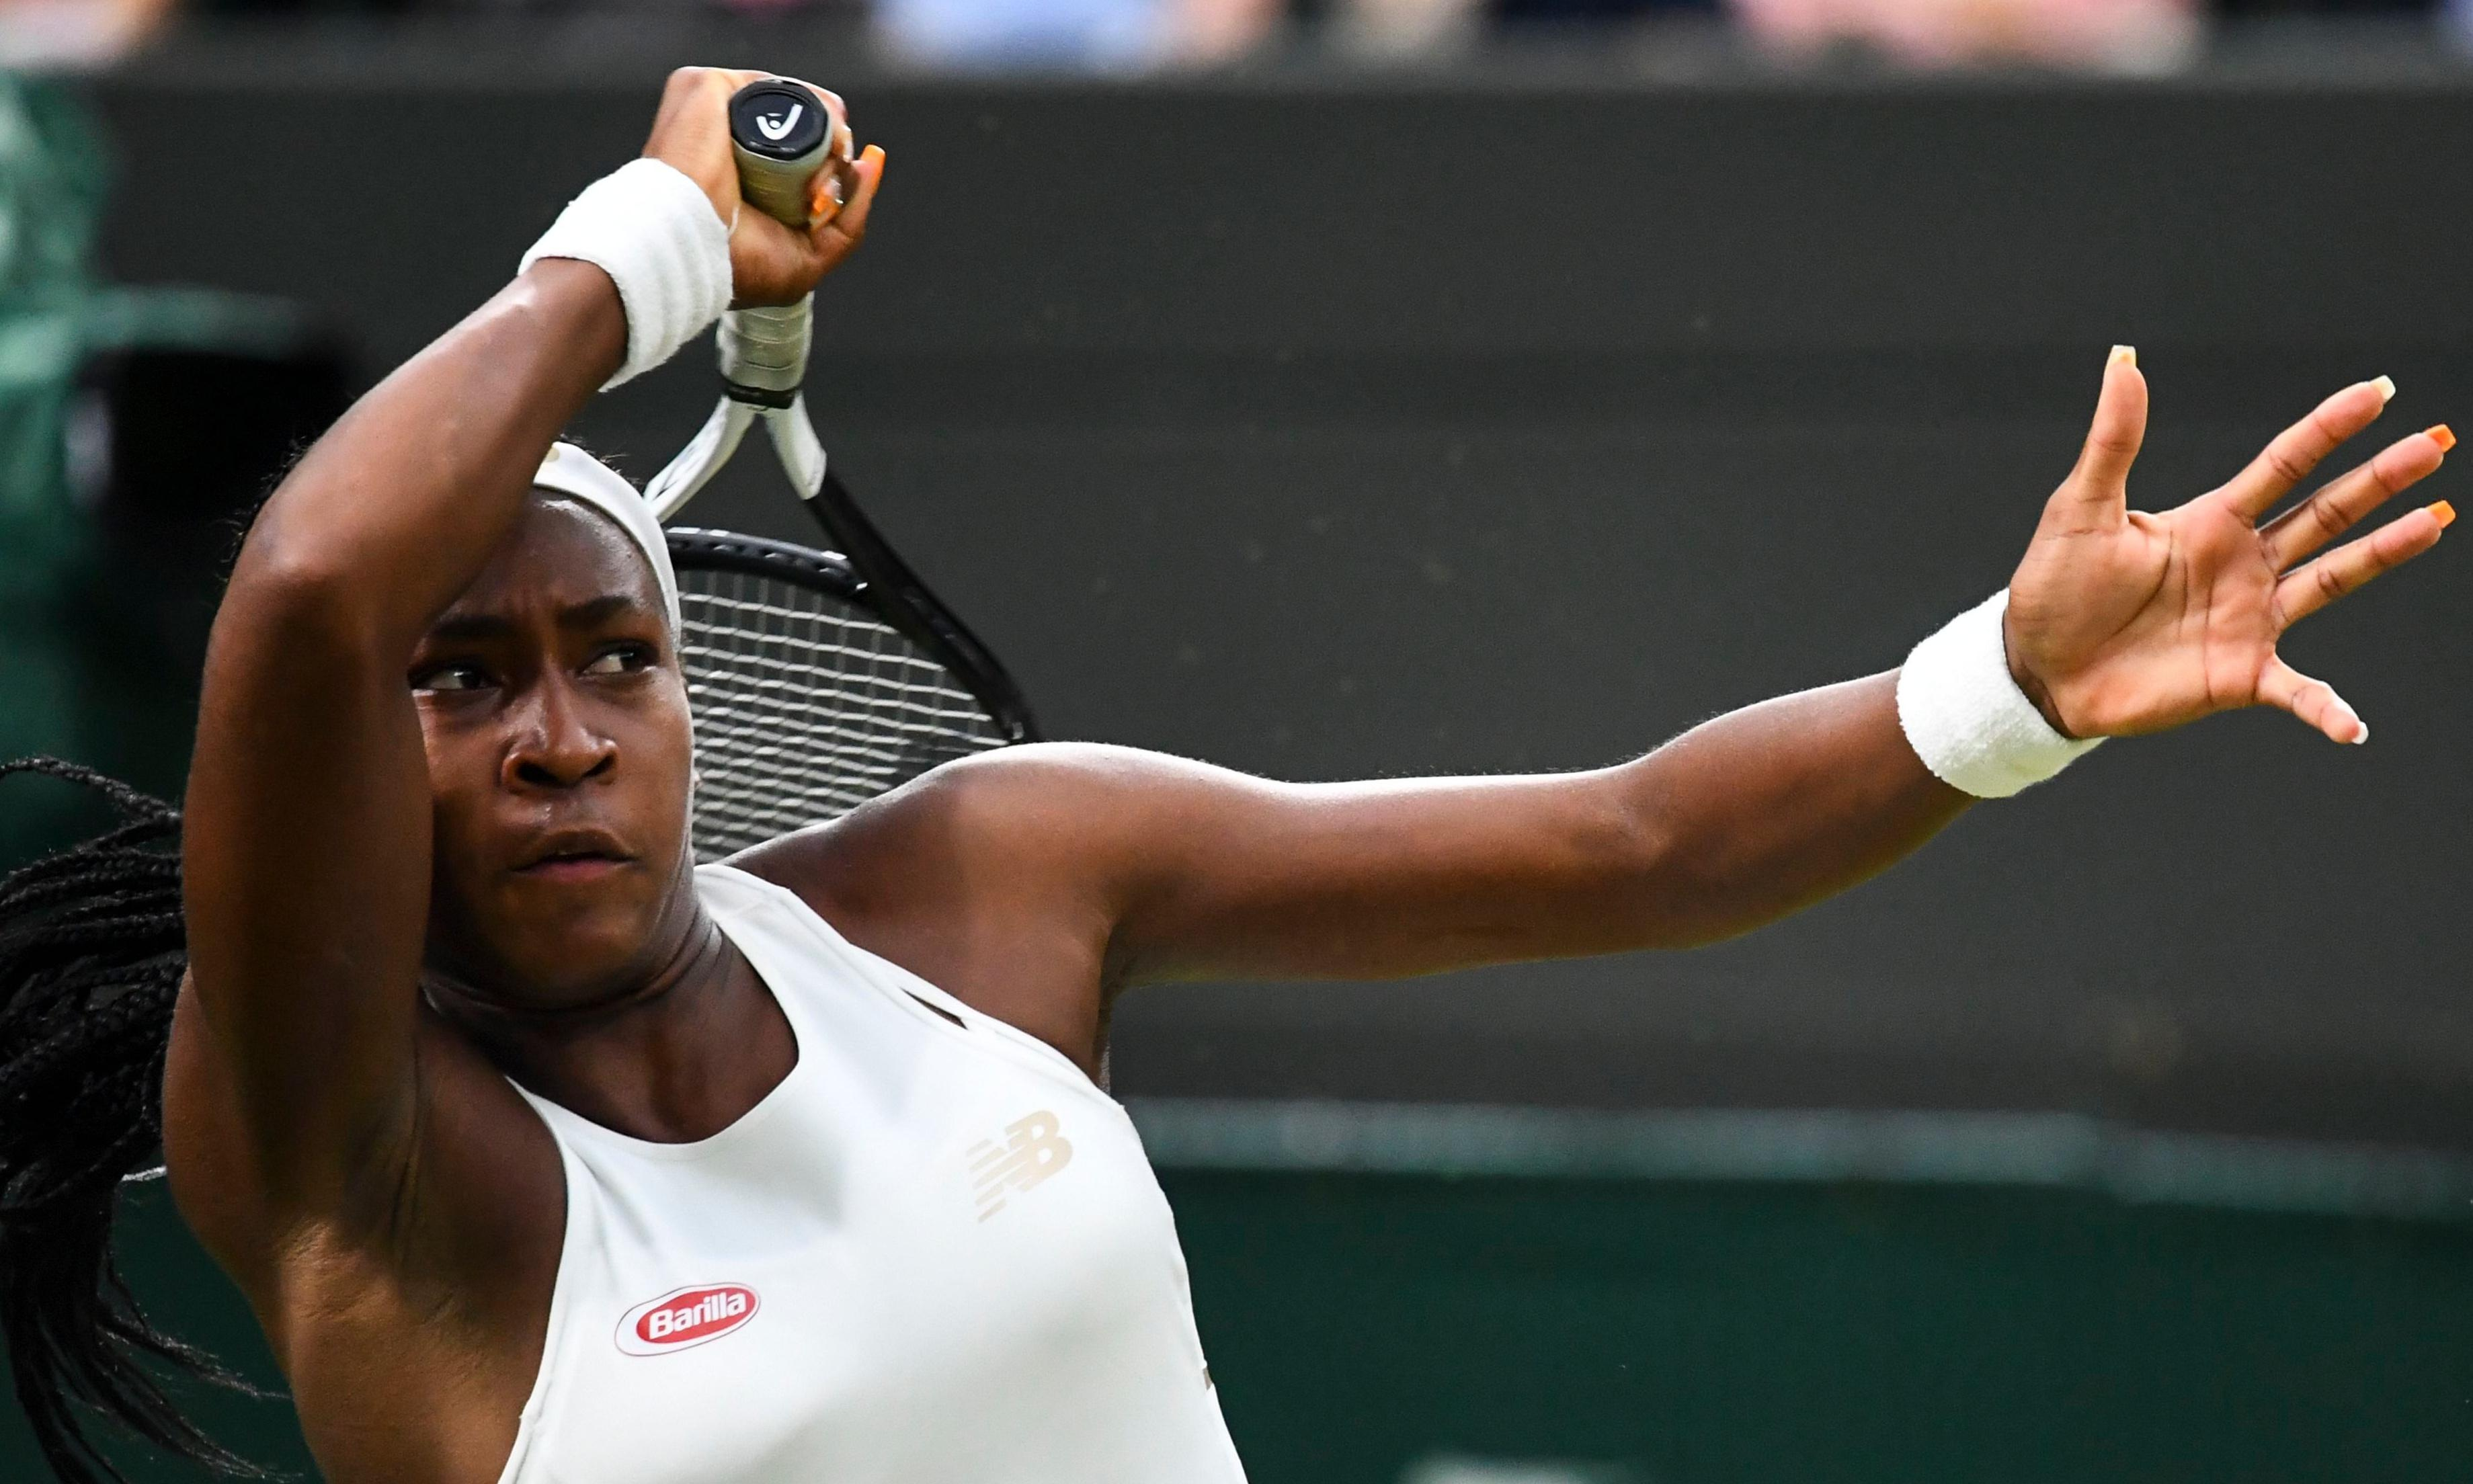 Cori Gauff oozes confidence and maturity in win over Magdalena Rybarikova